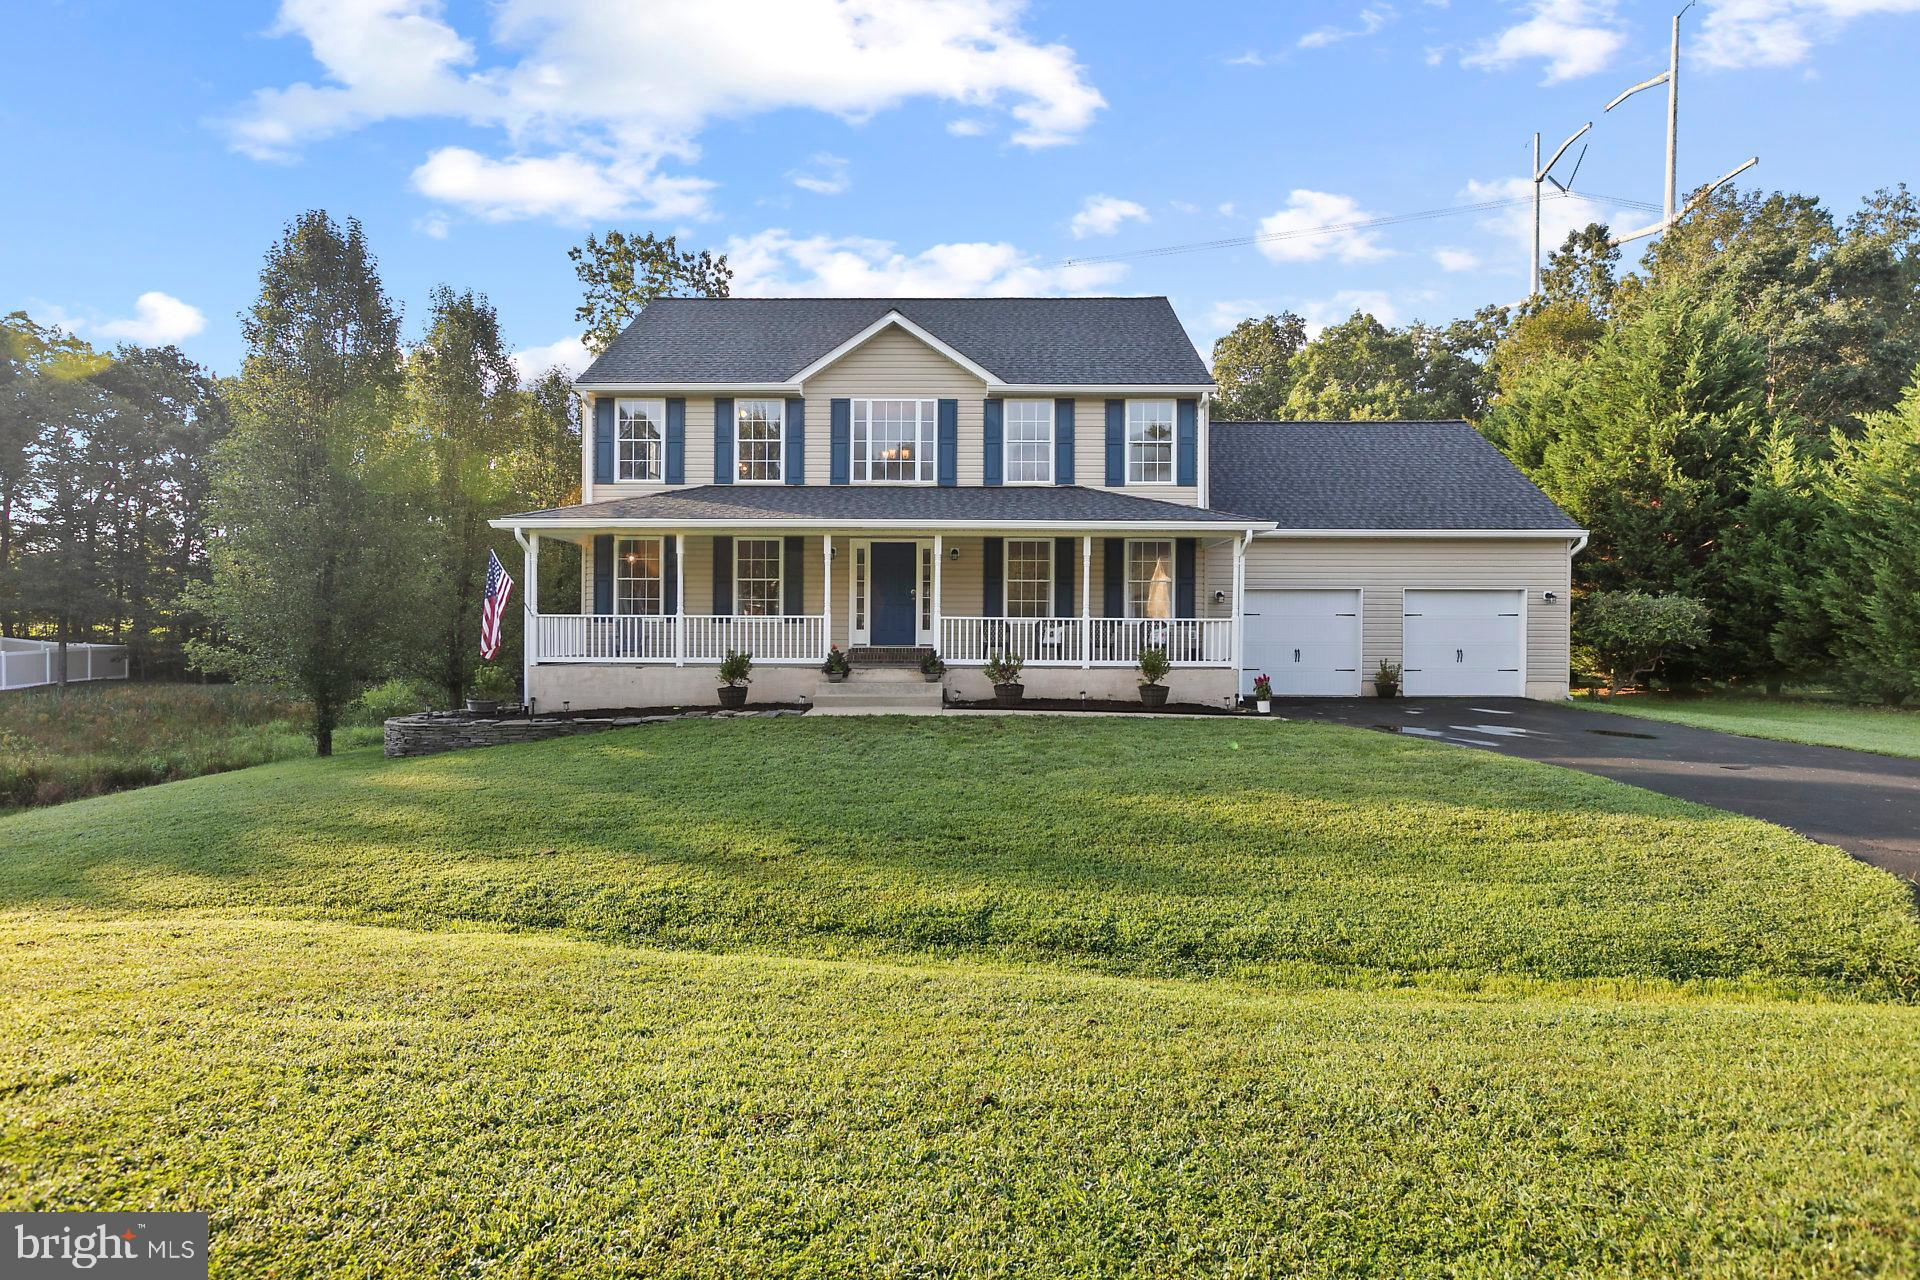 Beautiful 5 Bedroom 3.5 bath Colonial on a finished basement.  Updates include new roof with transfe